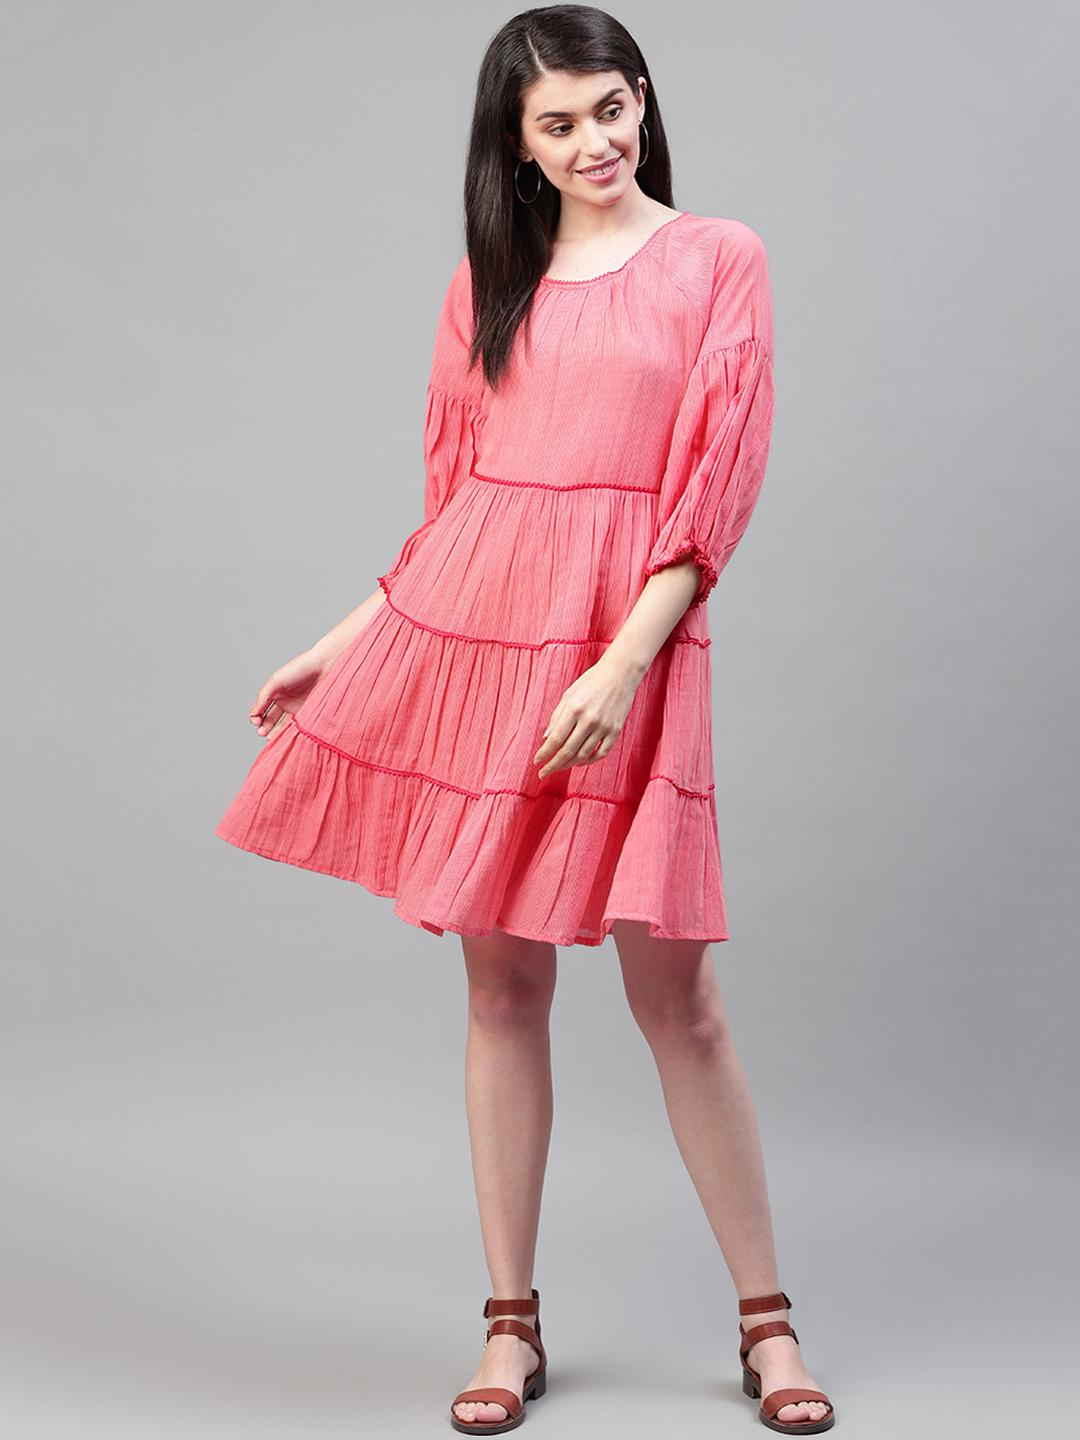 Red cotton lace insert dress with three quarter sleeves